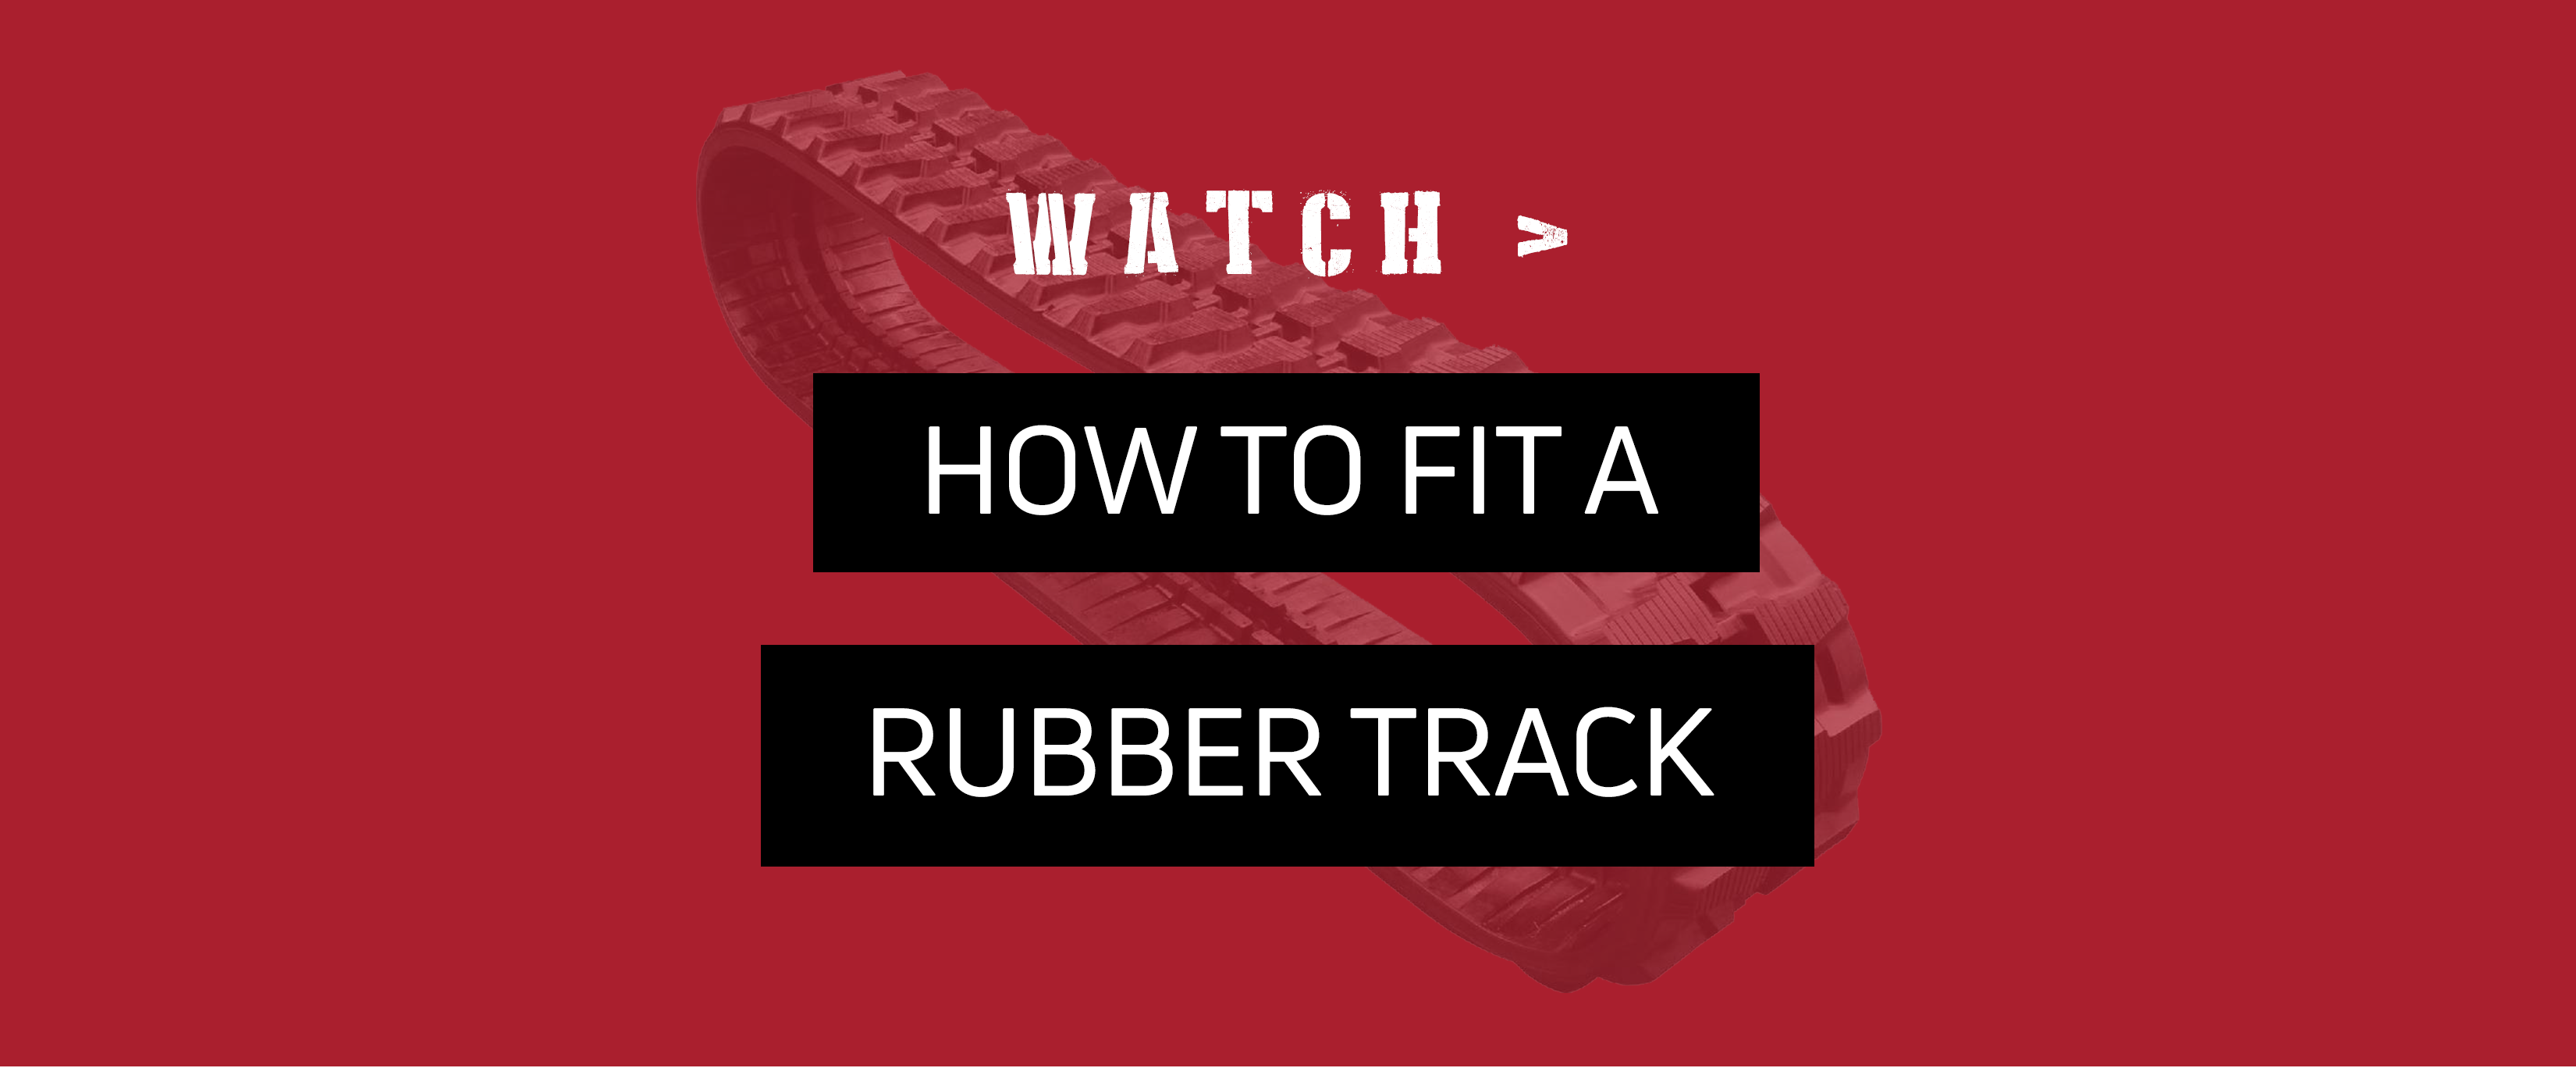 WATCH: How To Fit A Rubber Track